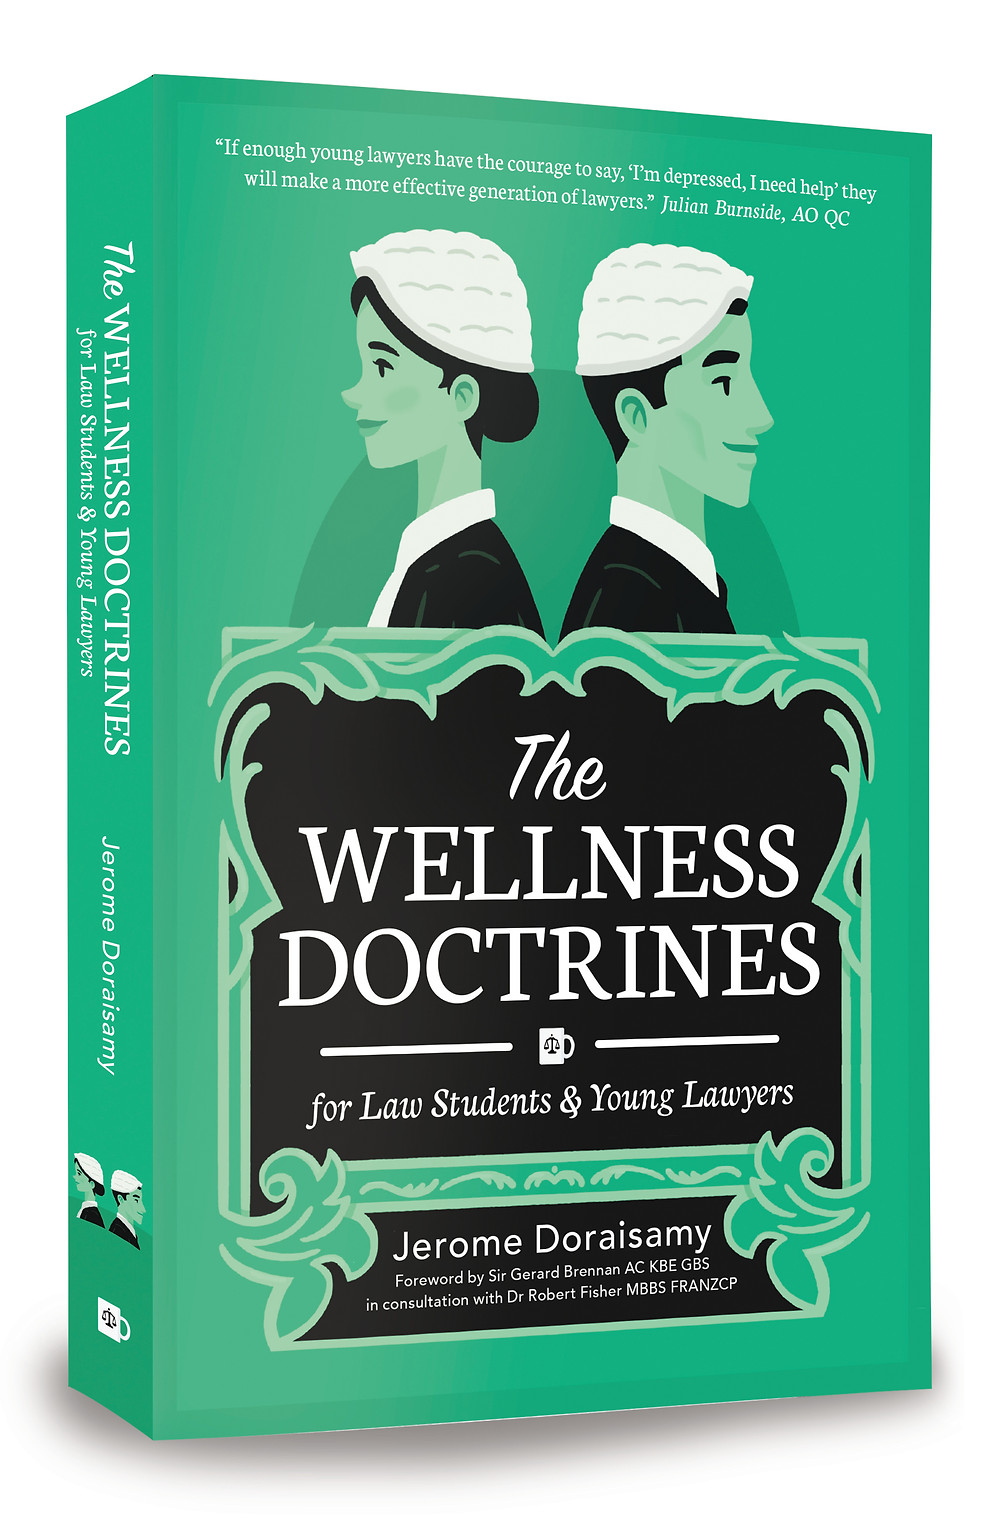 The Wellness Doctrines book cover